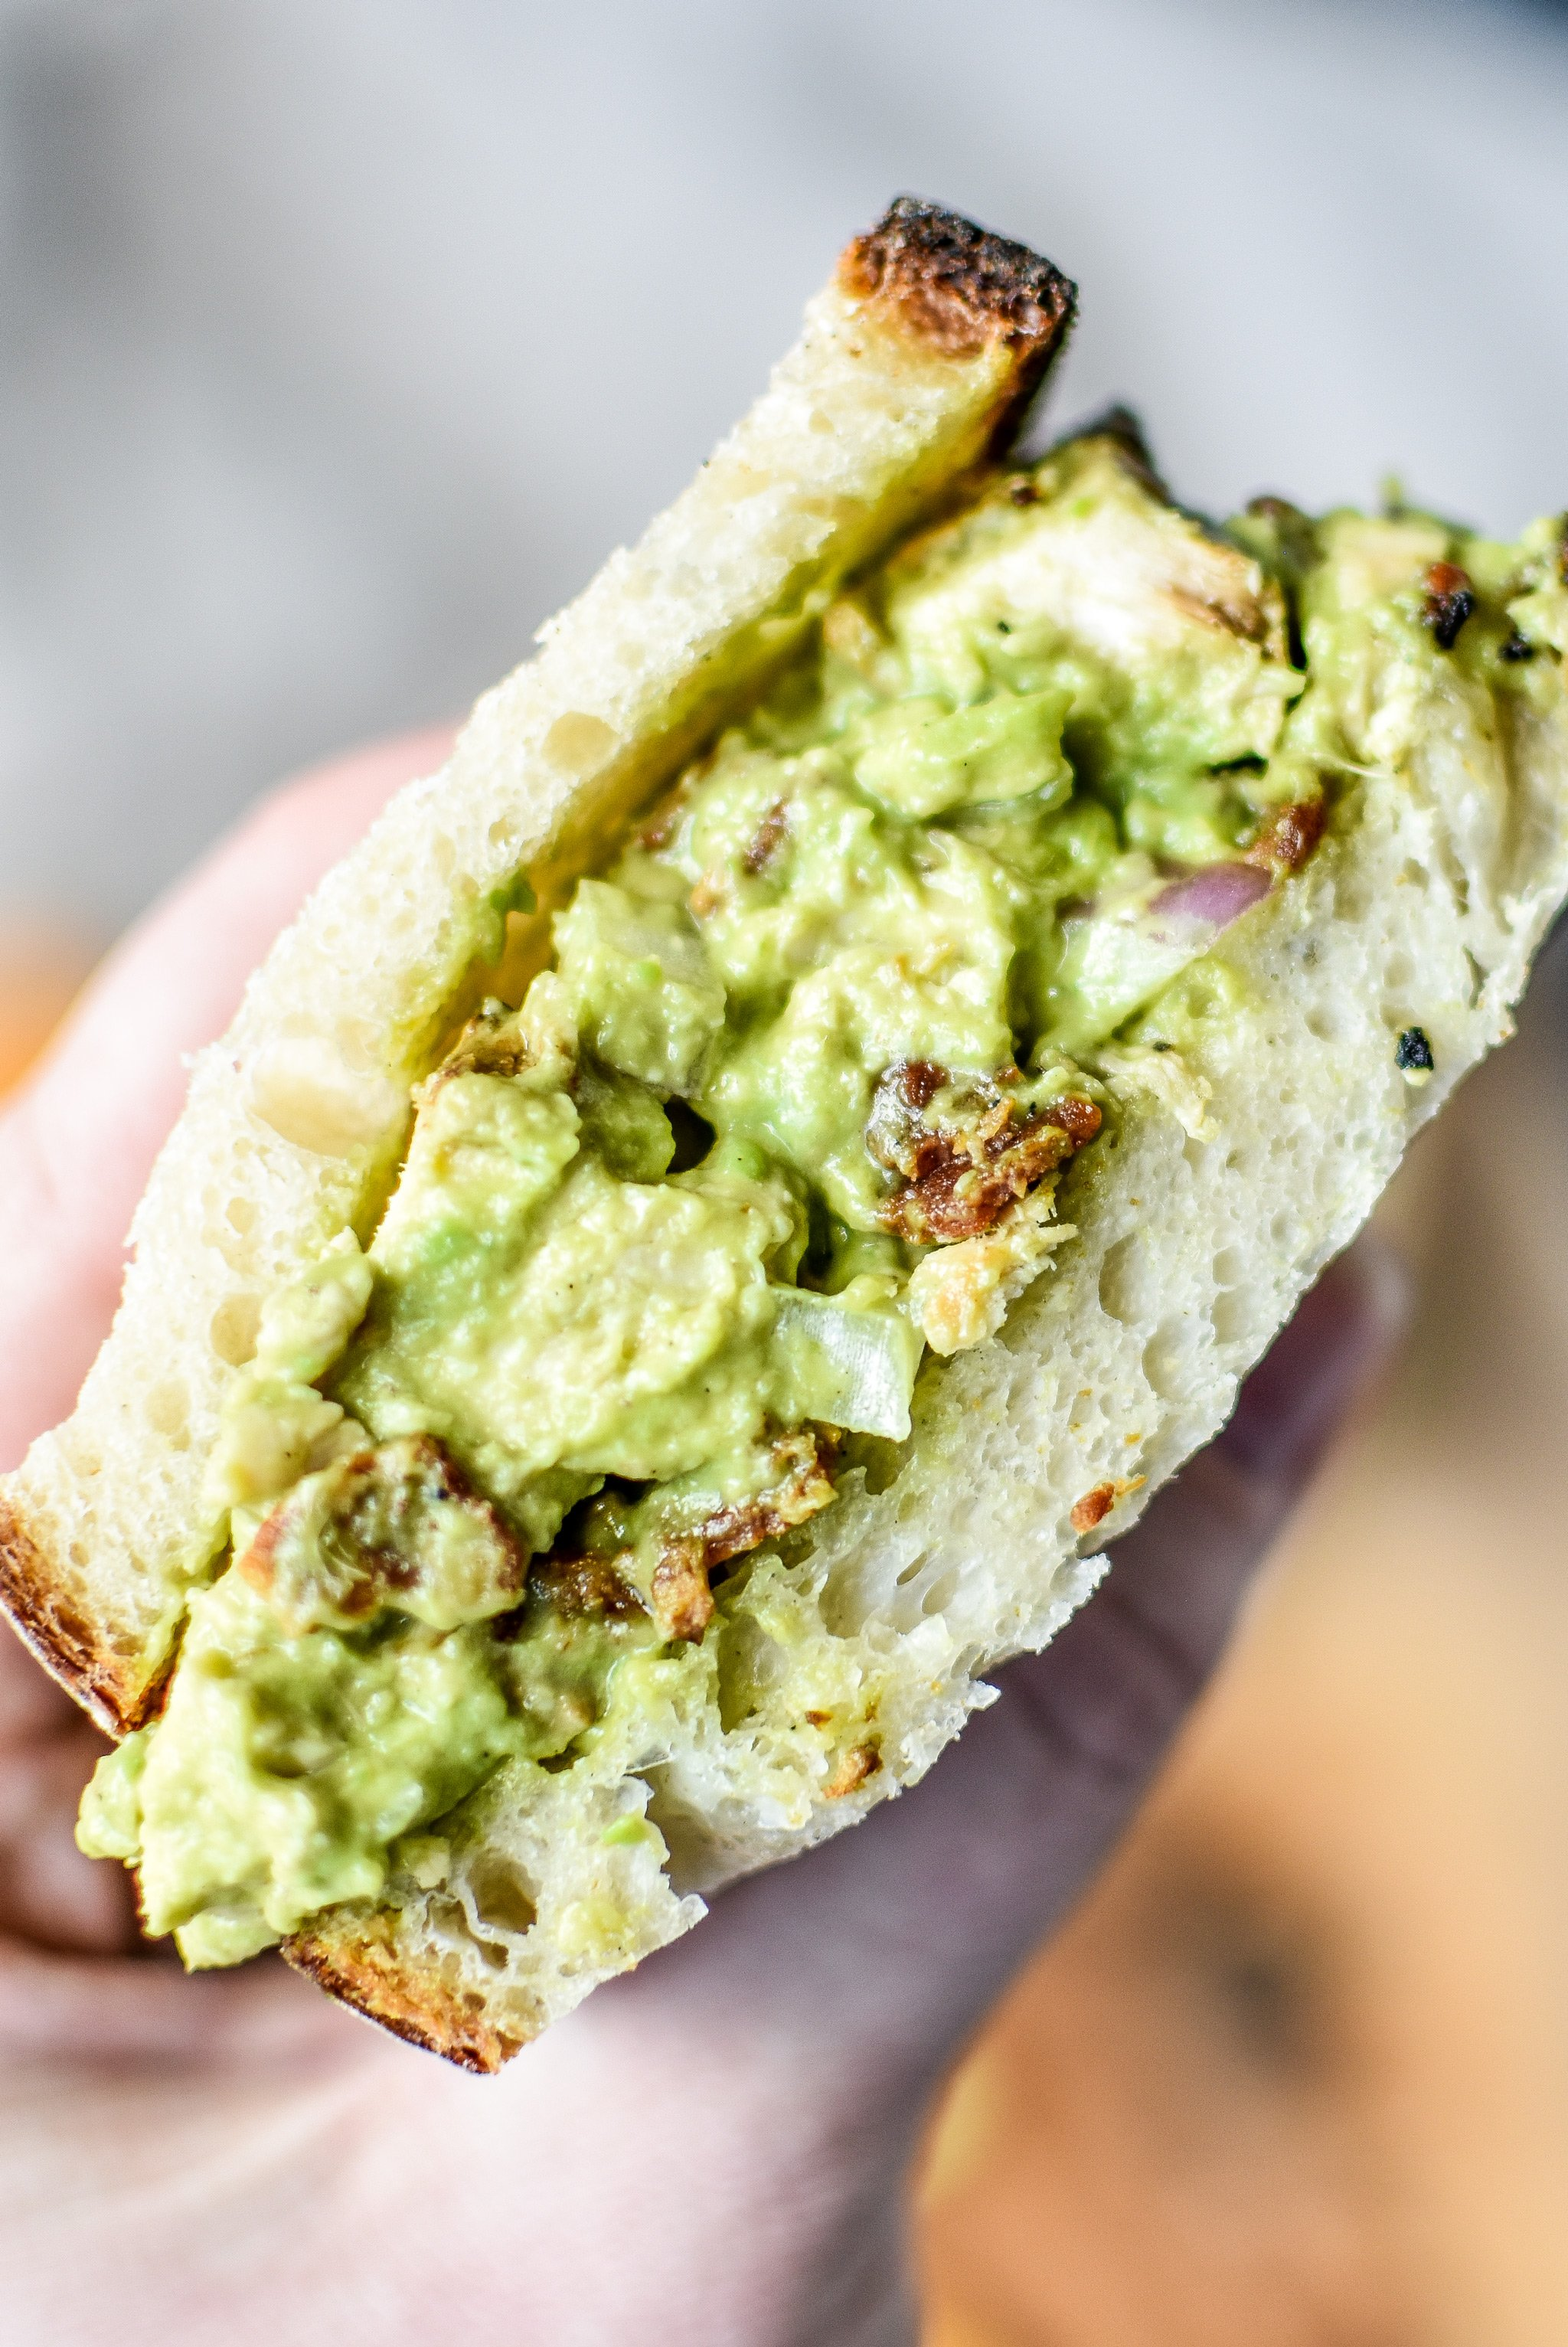 Holding a half of the delicious chicken bacon avocado salad sandwich.